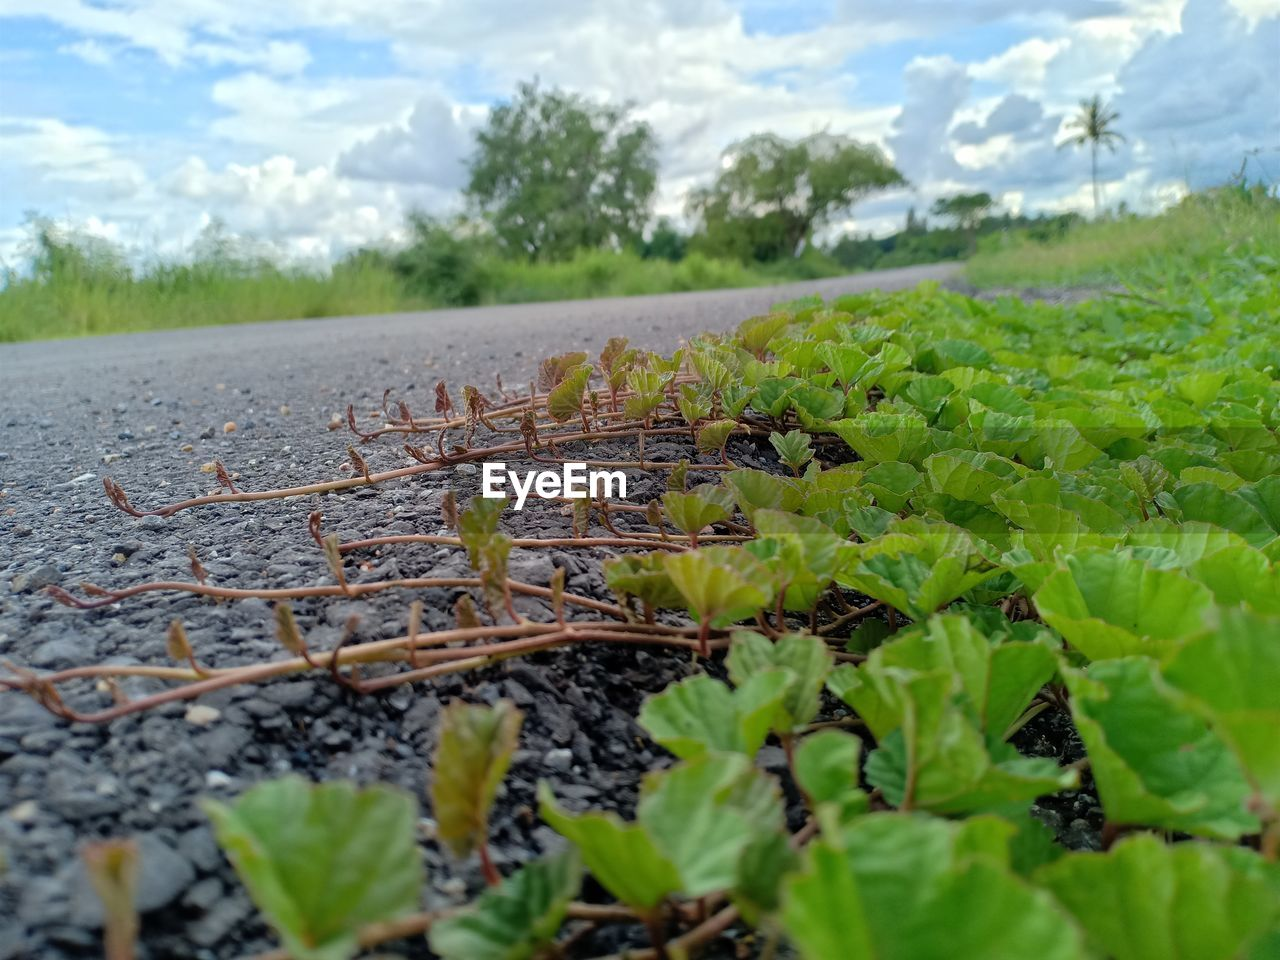 plant, nature, leaf, growth, plant part, green color, selective focus, day, no people, tranquility, land, close-up, field, cloud - sky, beauty in nature, outdoors, surface level, tranquil scene, sky, non-urban scene, leaves